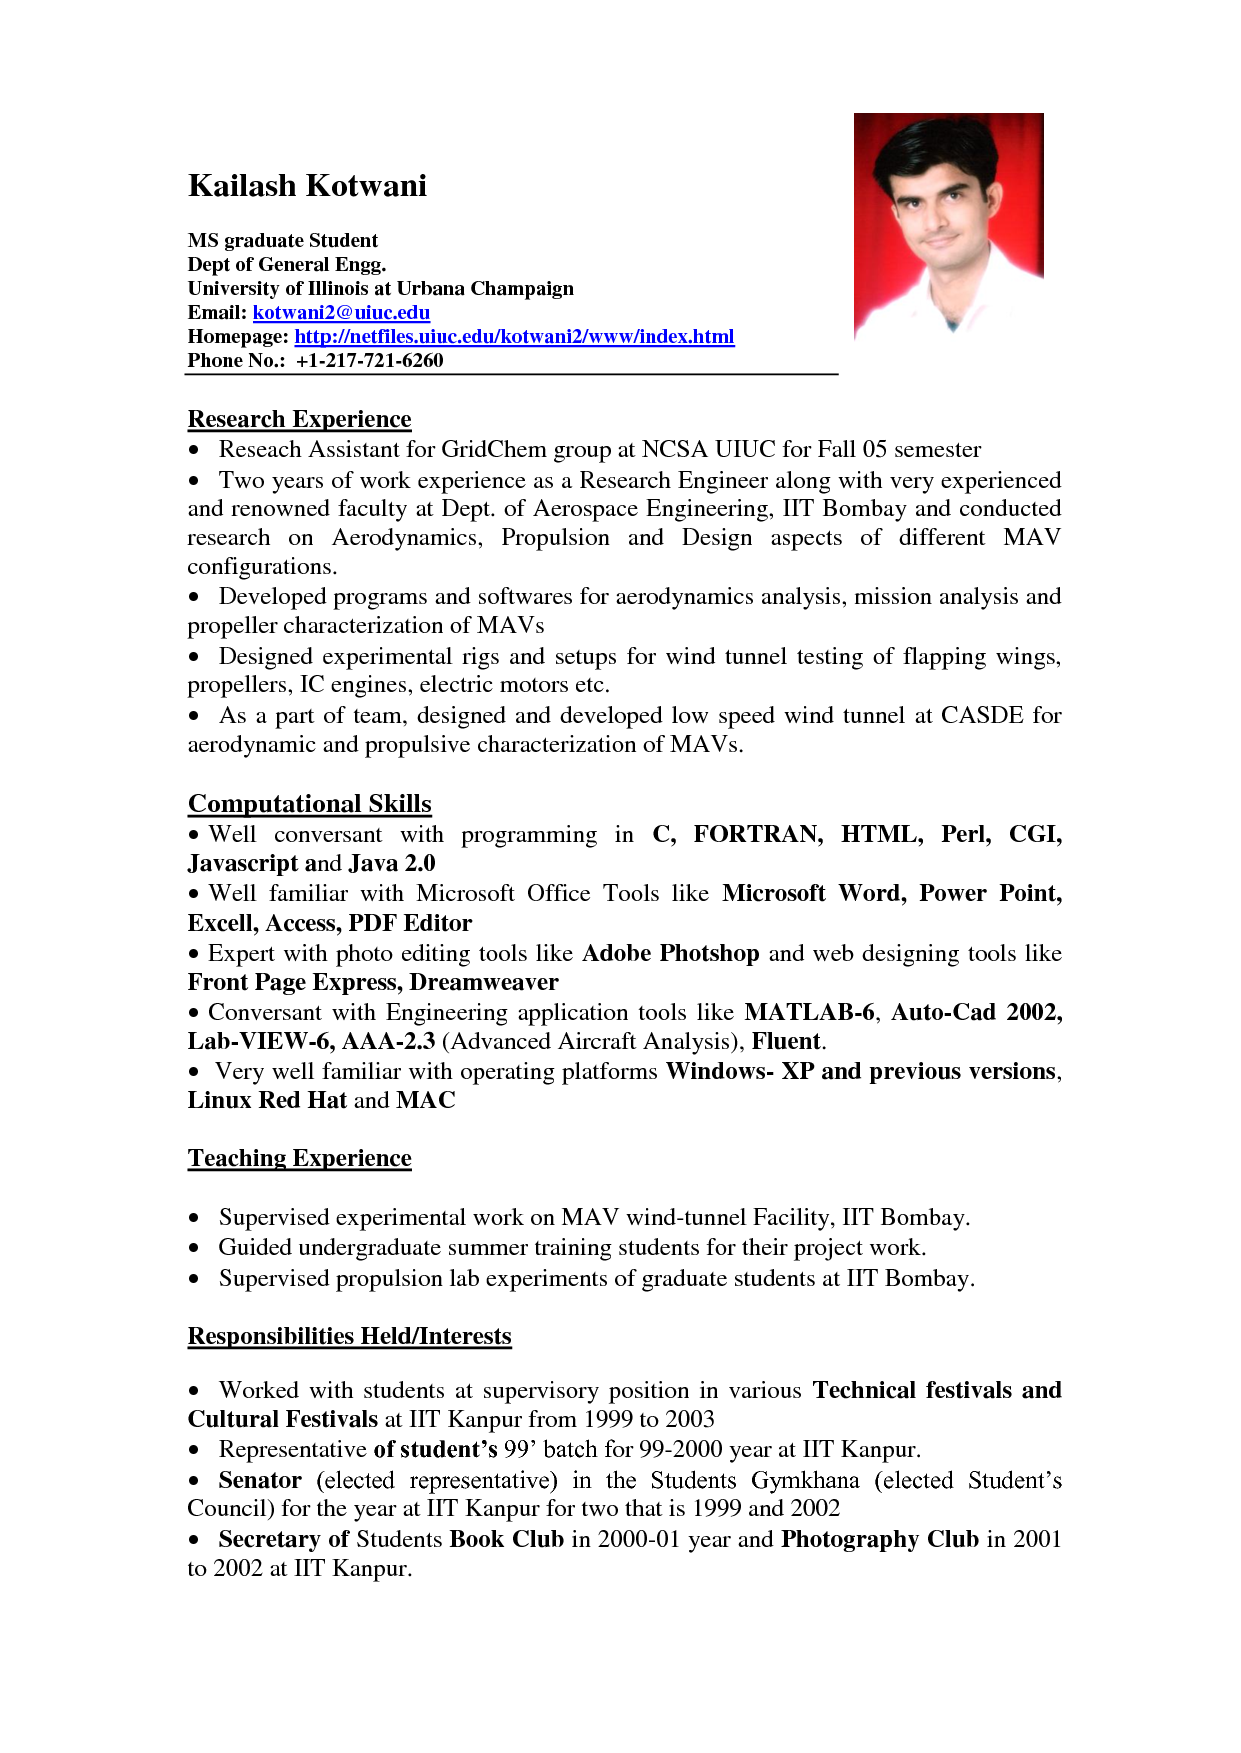 Perfect High School Student Resume Examples No Work Experience No Work Experience  Resume Content. How To Write A Resume Resume . Idea Examples Of Work Experience